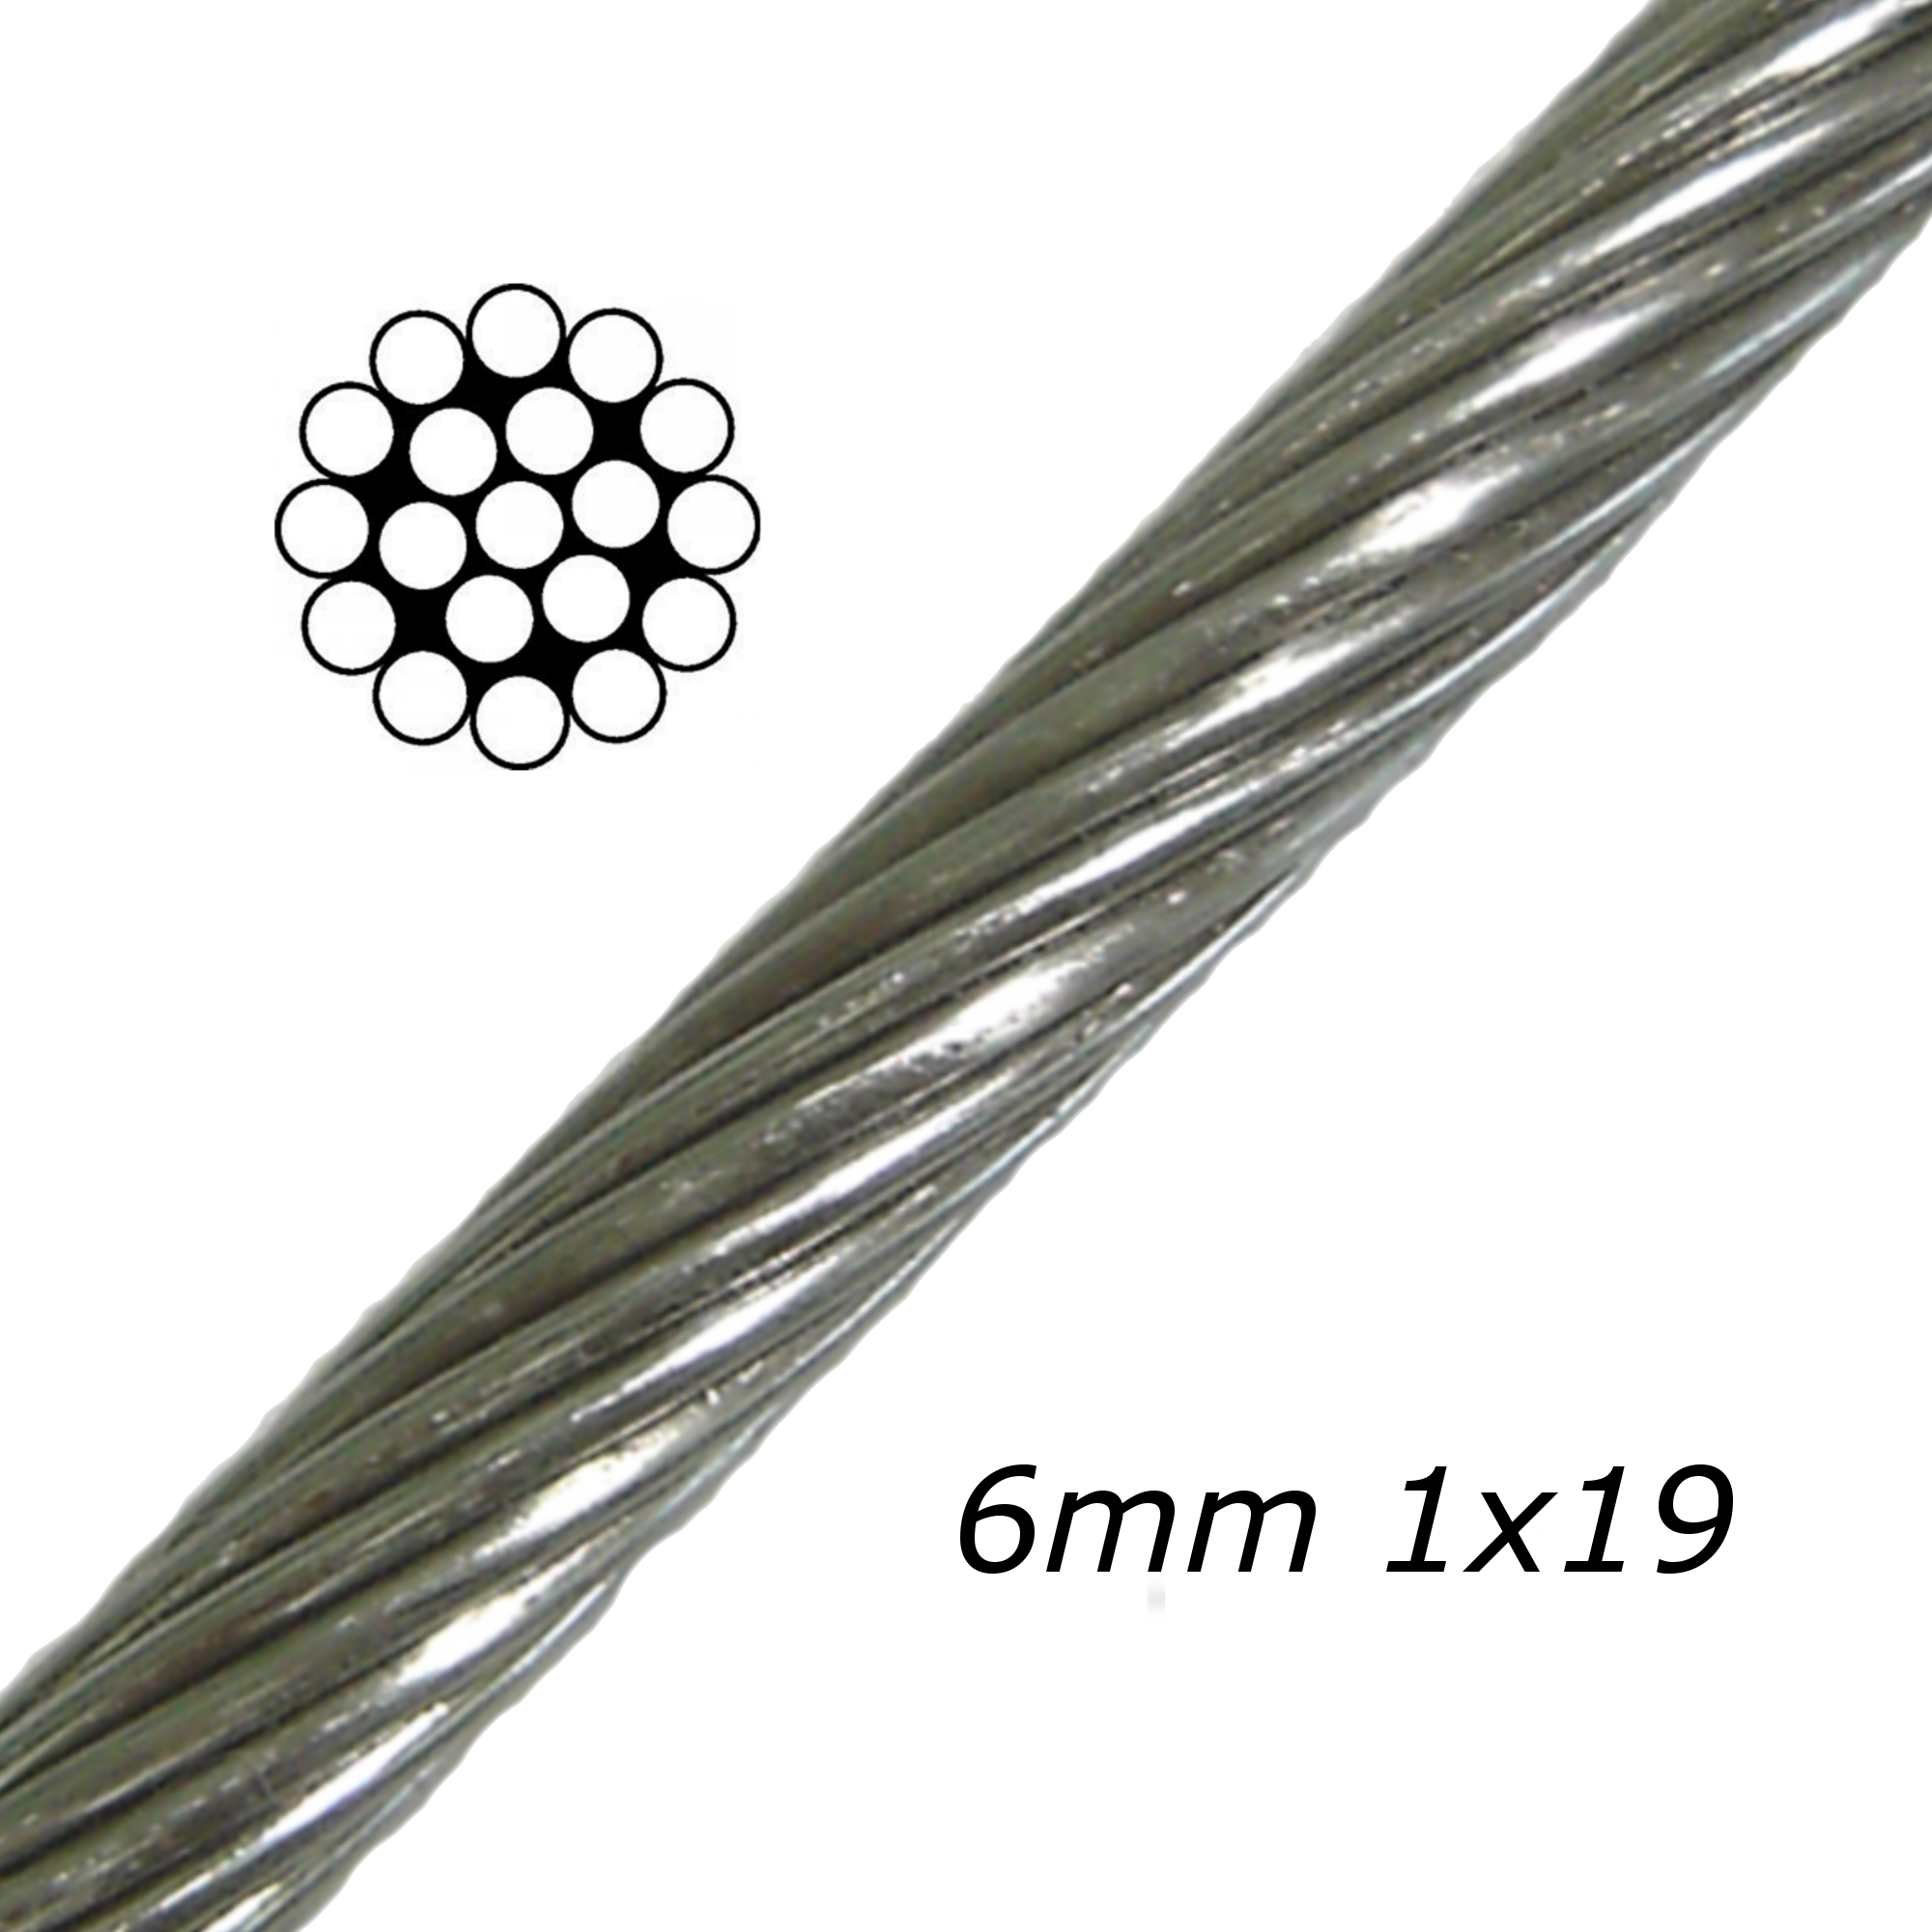 6mm Stainless Steel Cable 1x19